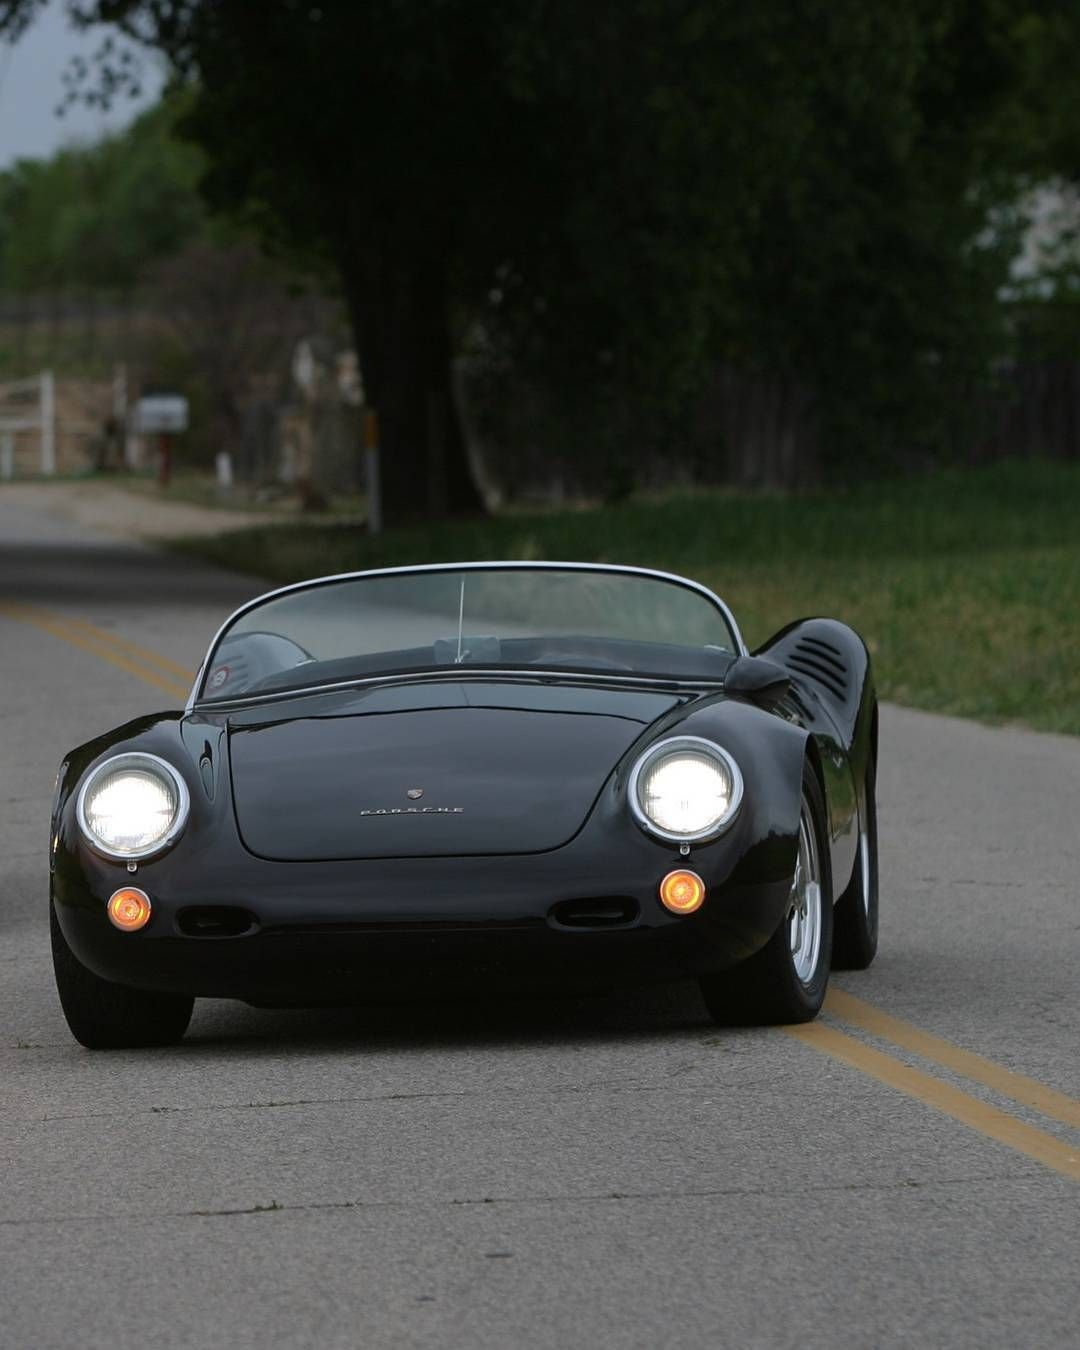 Porsche 550 Spyder Repin By At Social Media Marketing